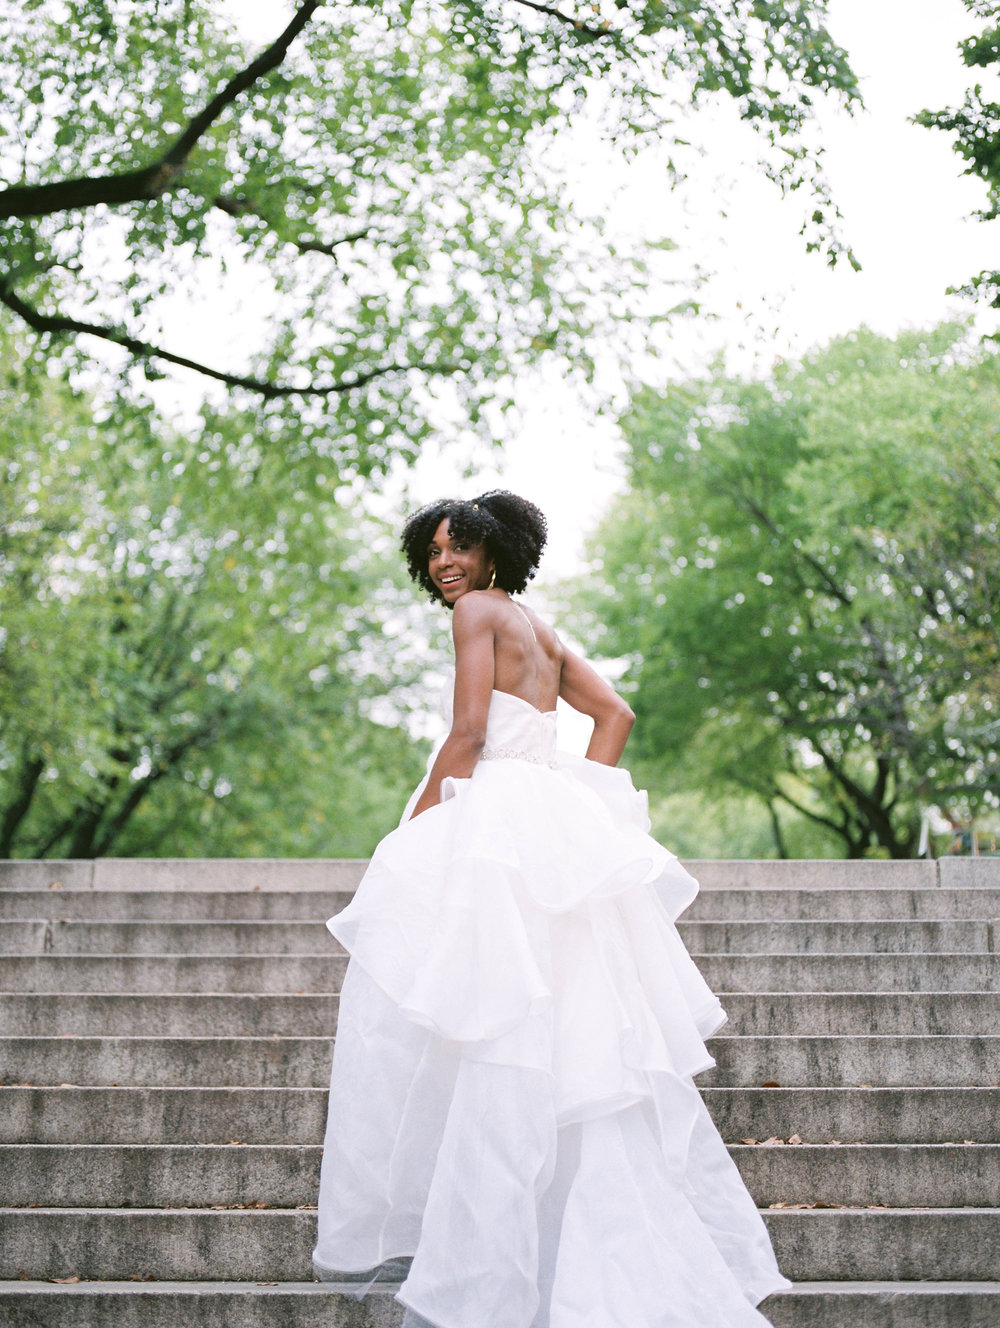 Central Park Wedding Inspiration - www.jleephotos.com